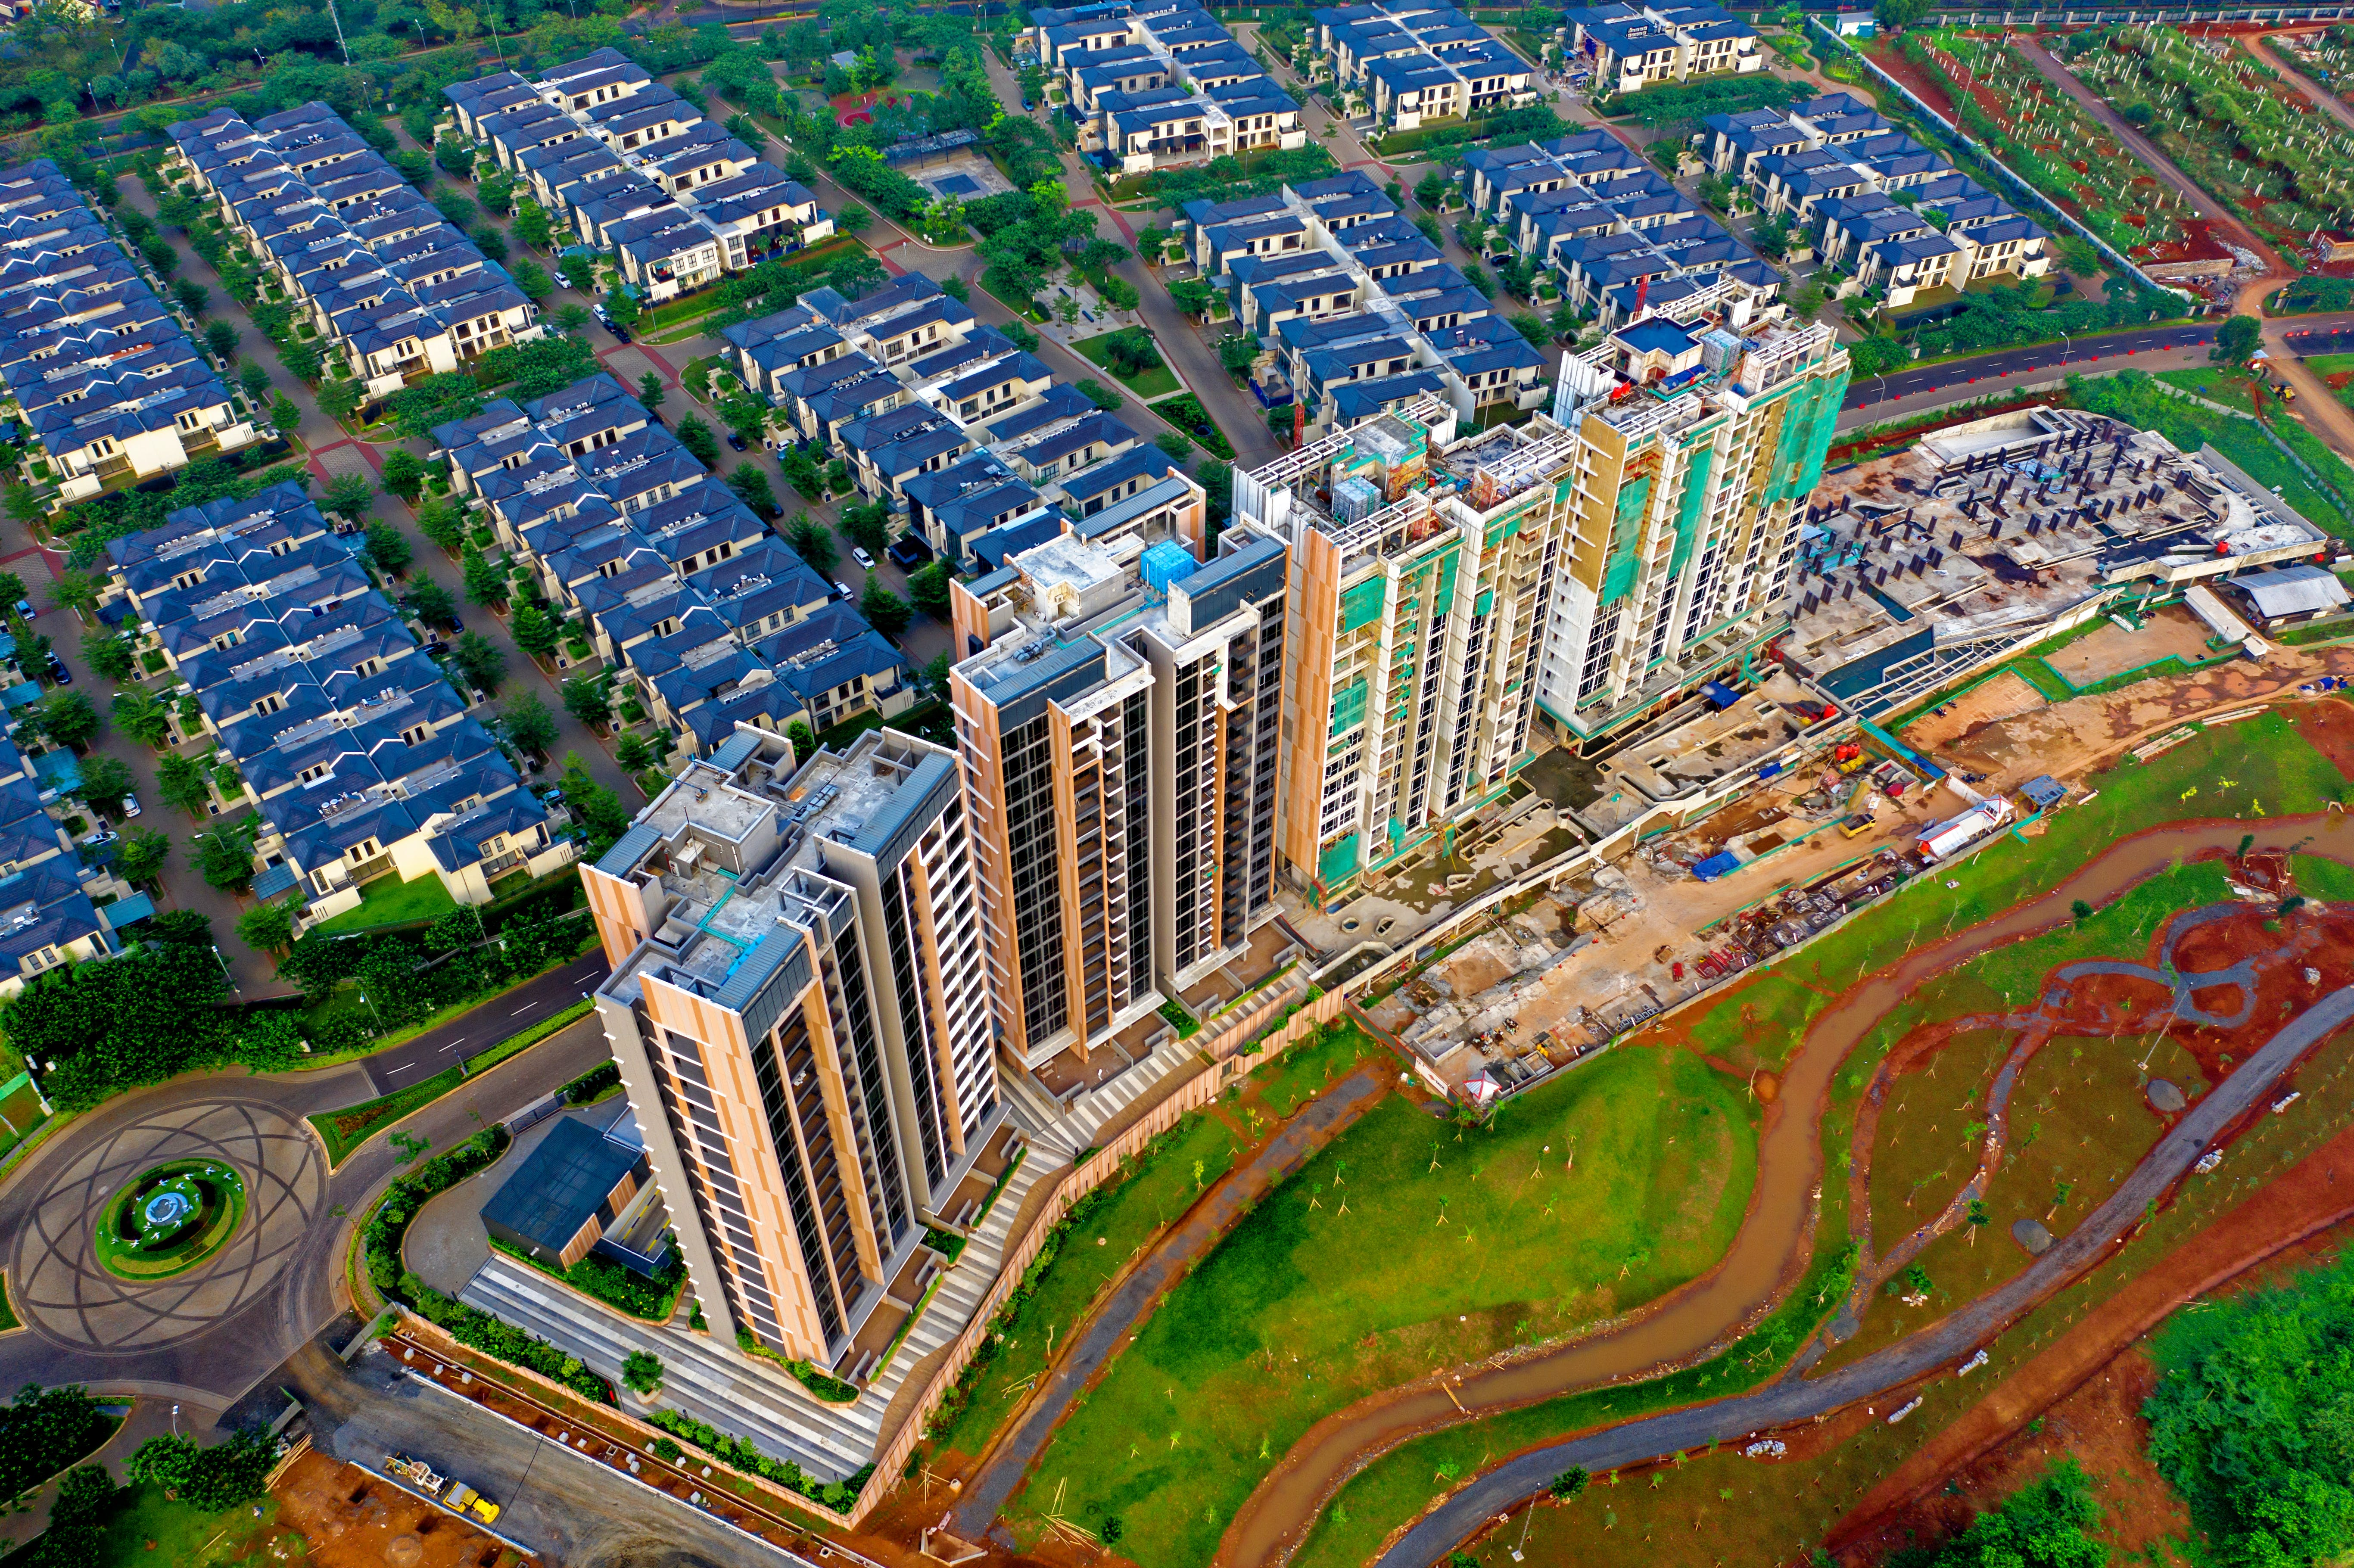 Aerial Photography of Gray High-rise Buildings